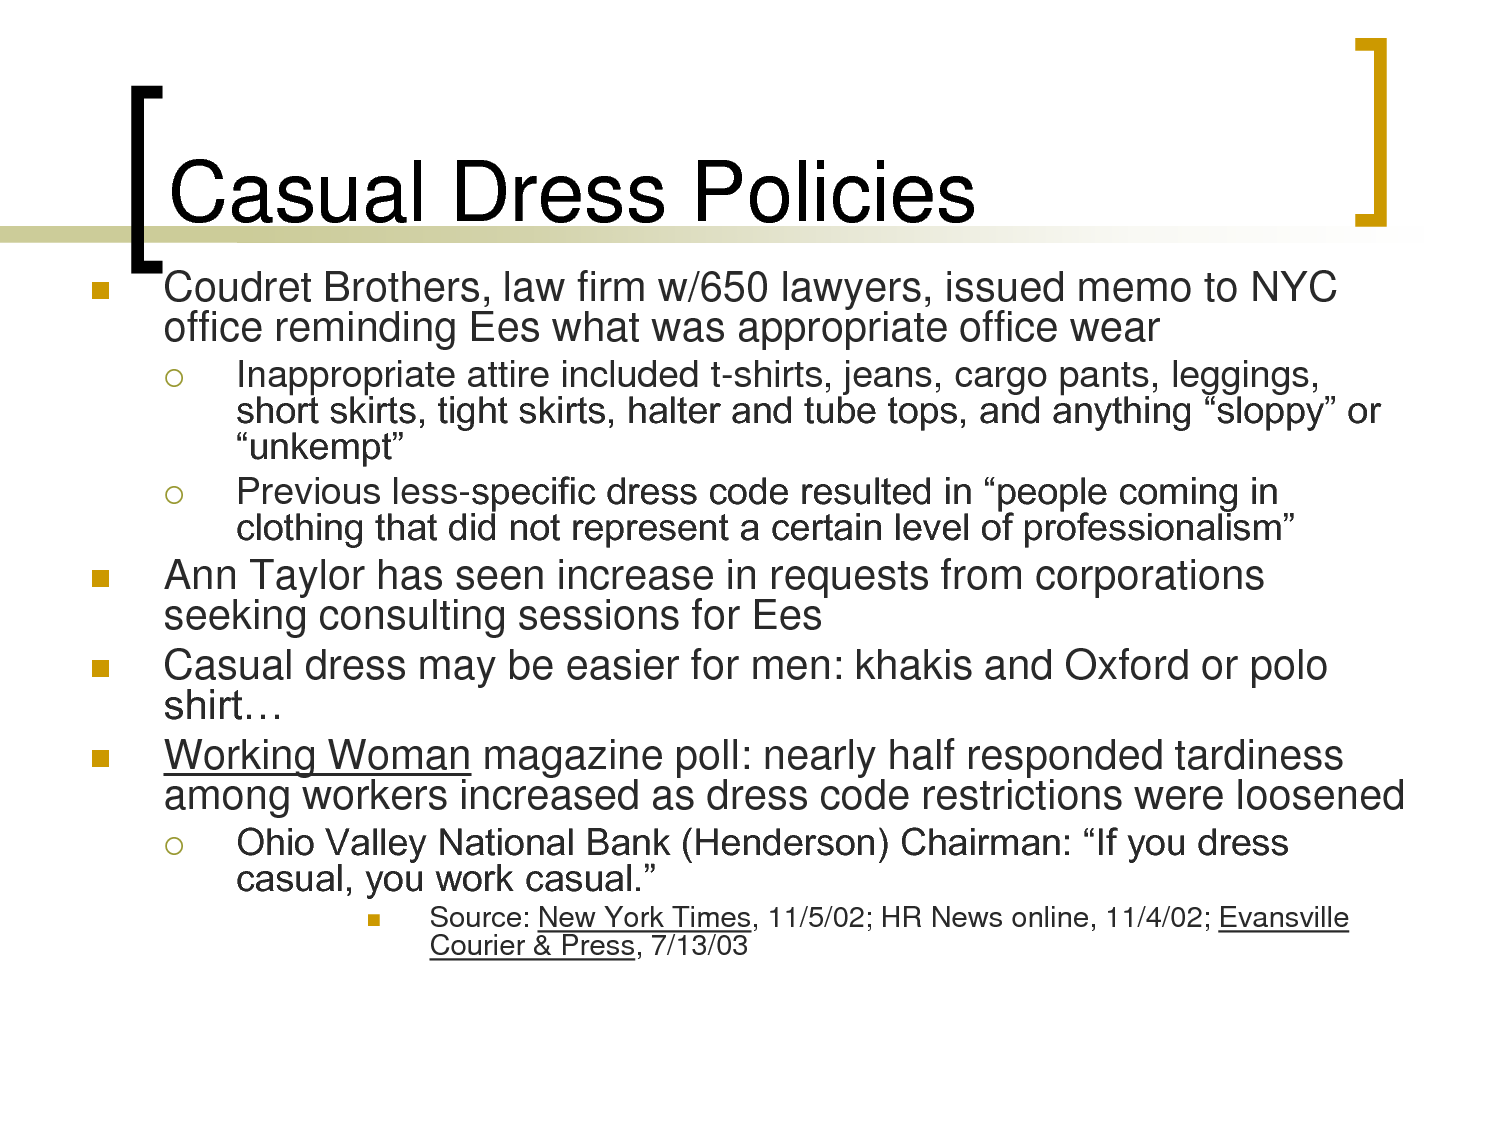 sample casual dress code policy photo - 1